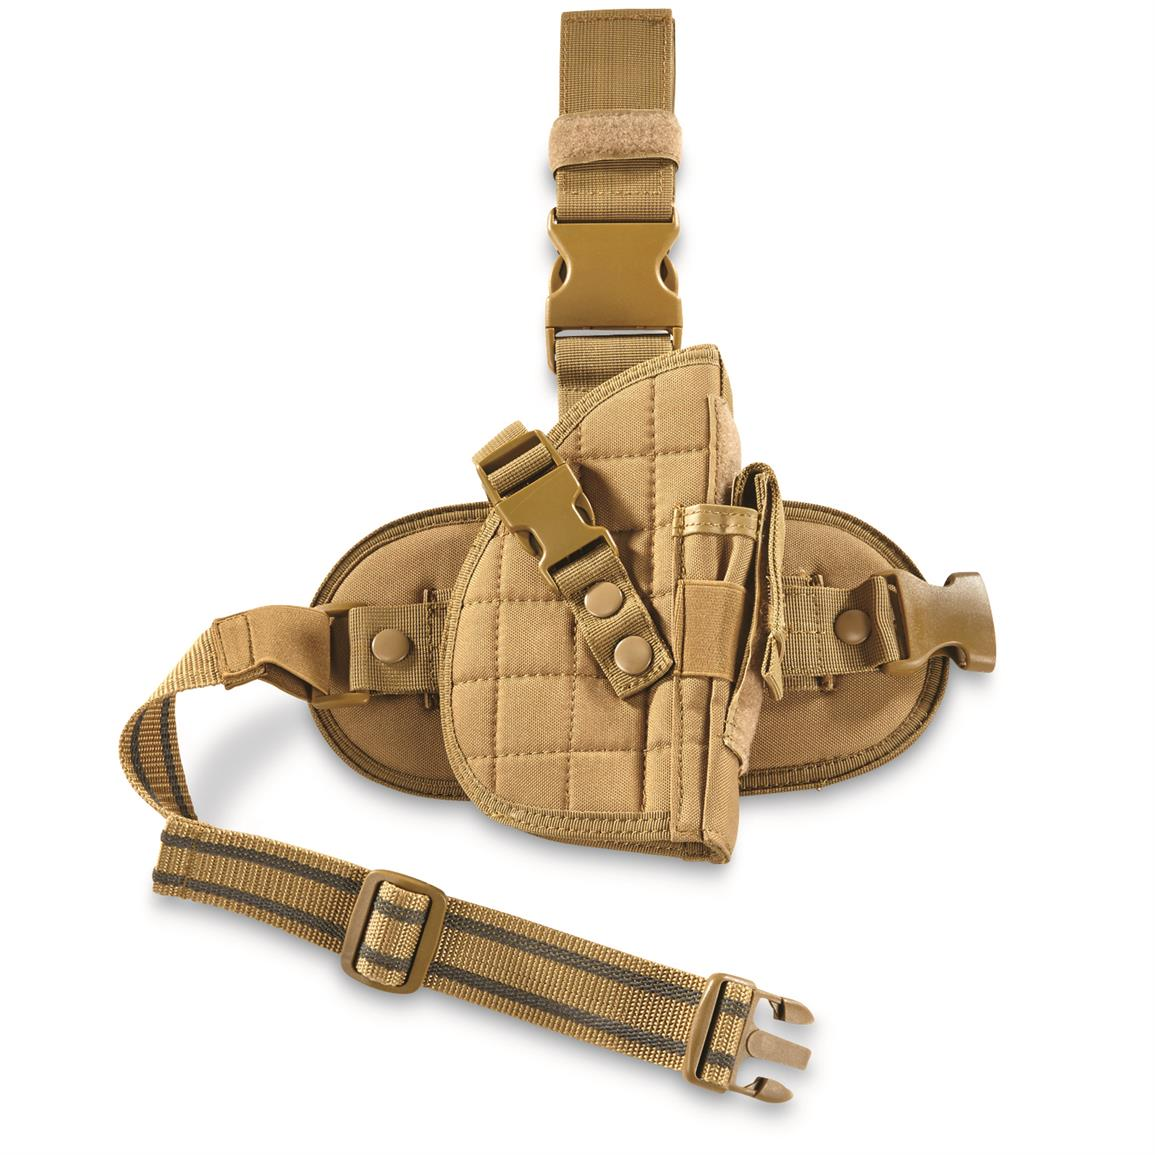 Fox Outdoors Military-Style Drop Leg Holster, Coyote Tan